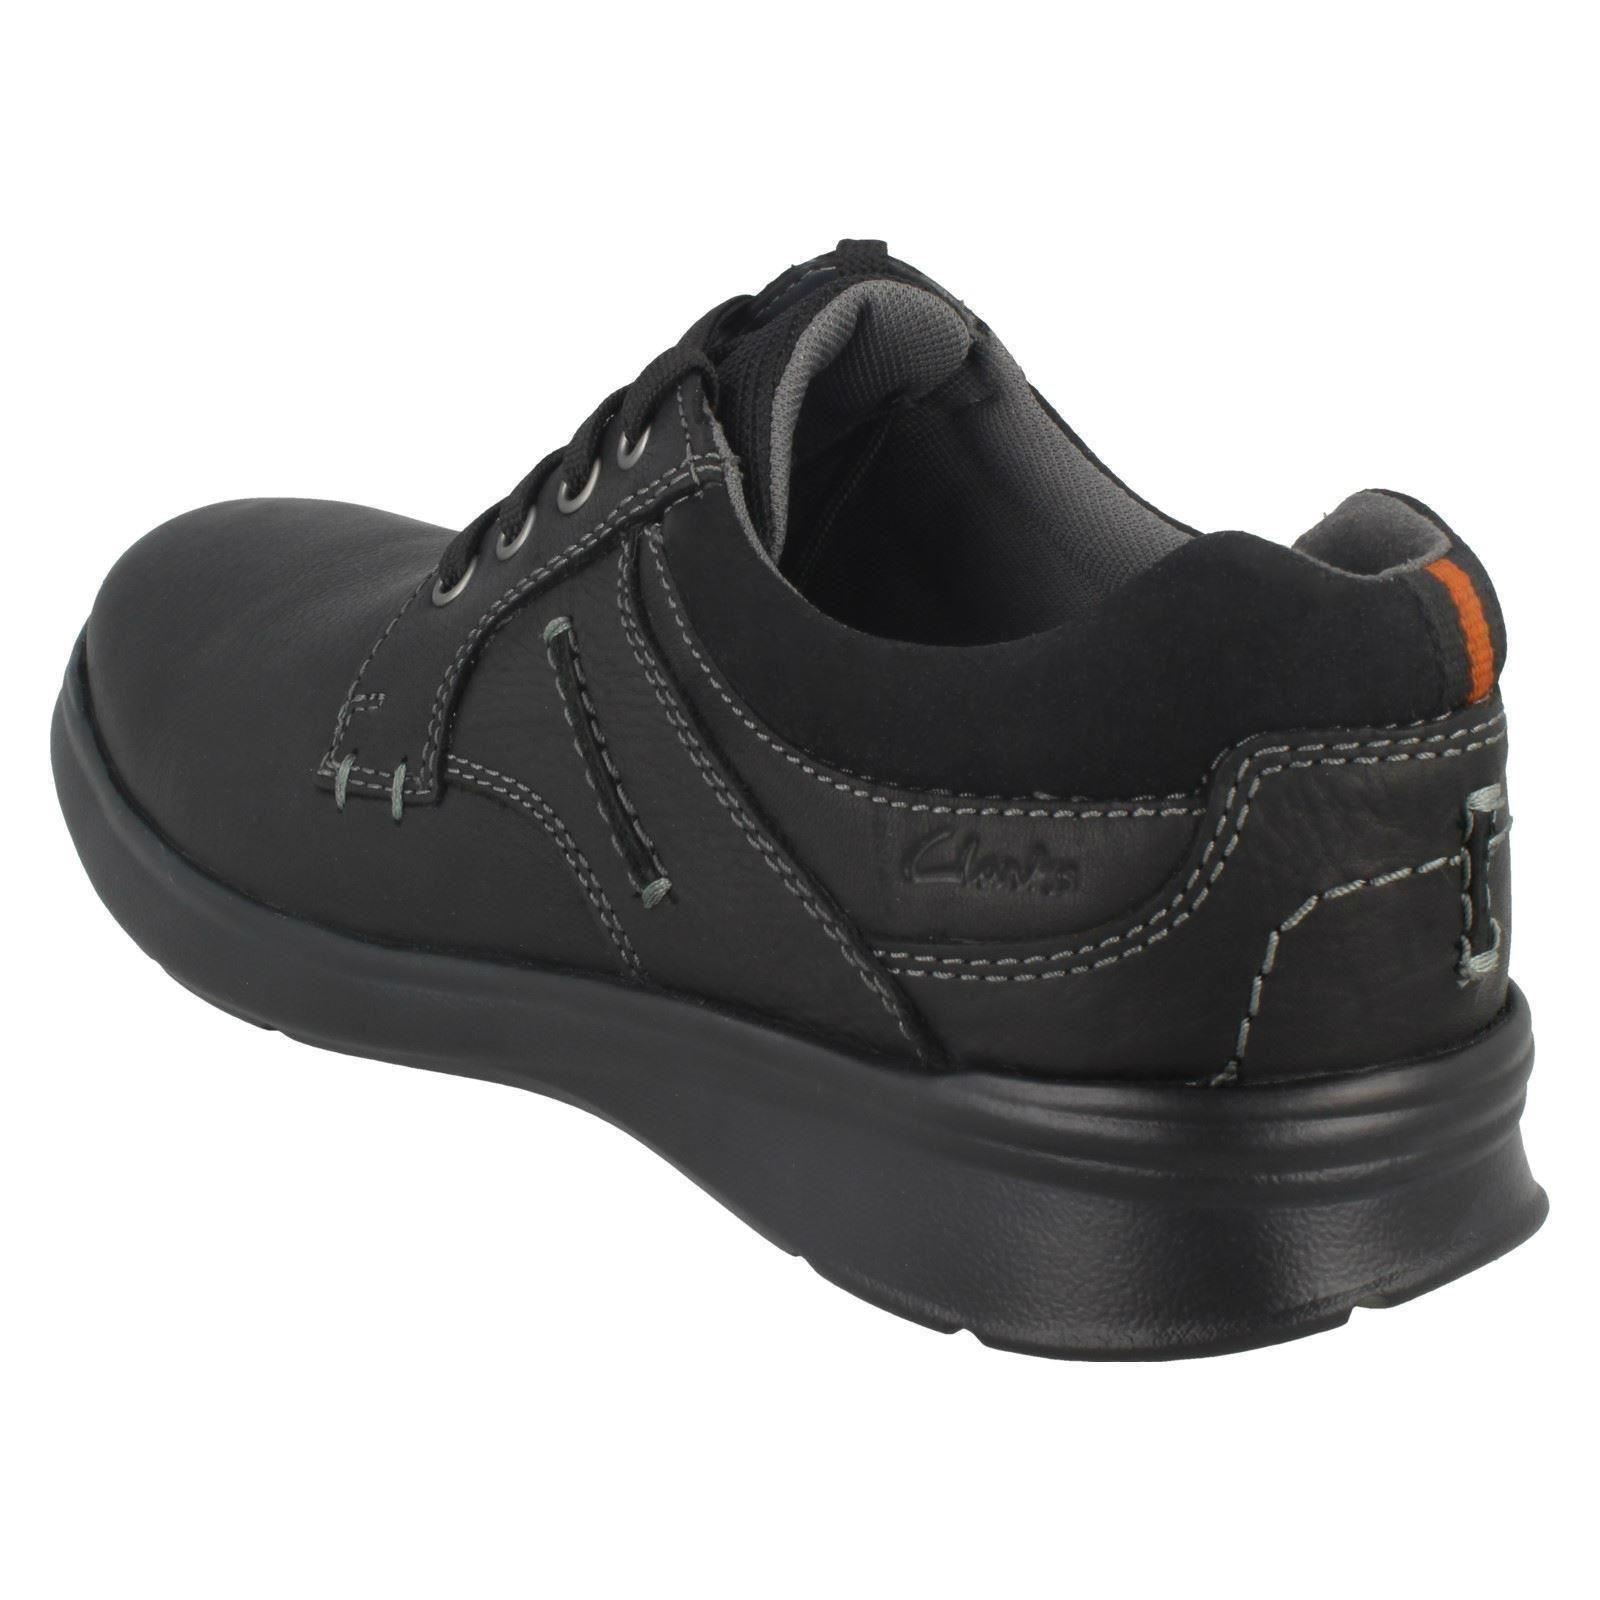 Mens Clarks Casual Rounded Toe Lace Up Leather//Textile Shoes Cotrell Plain